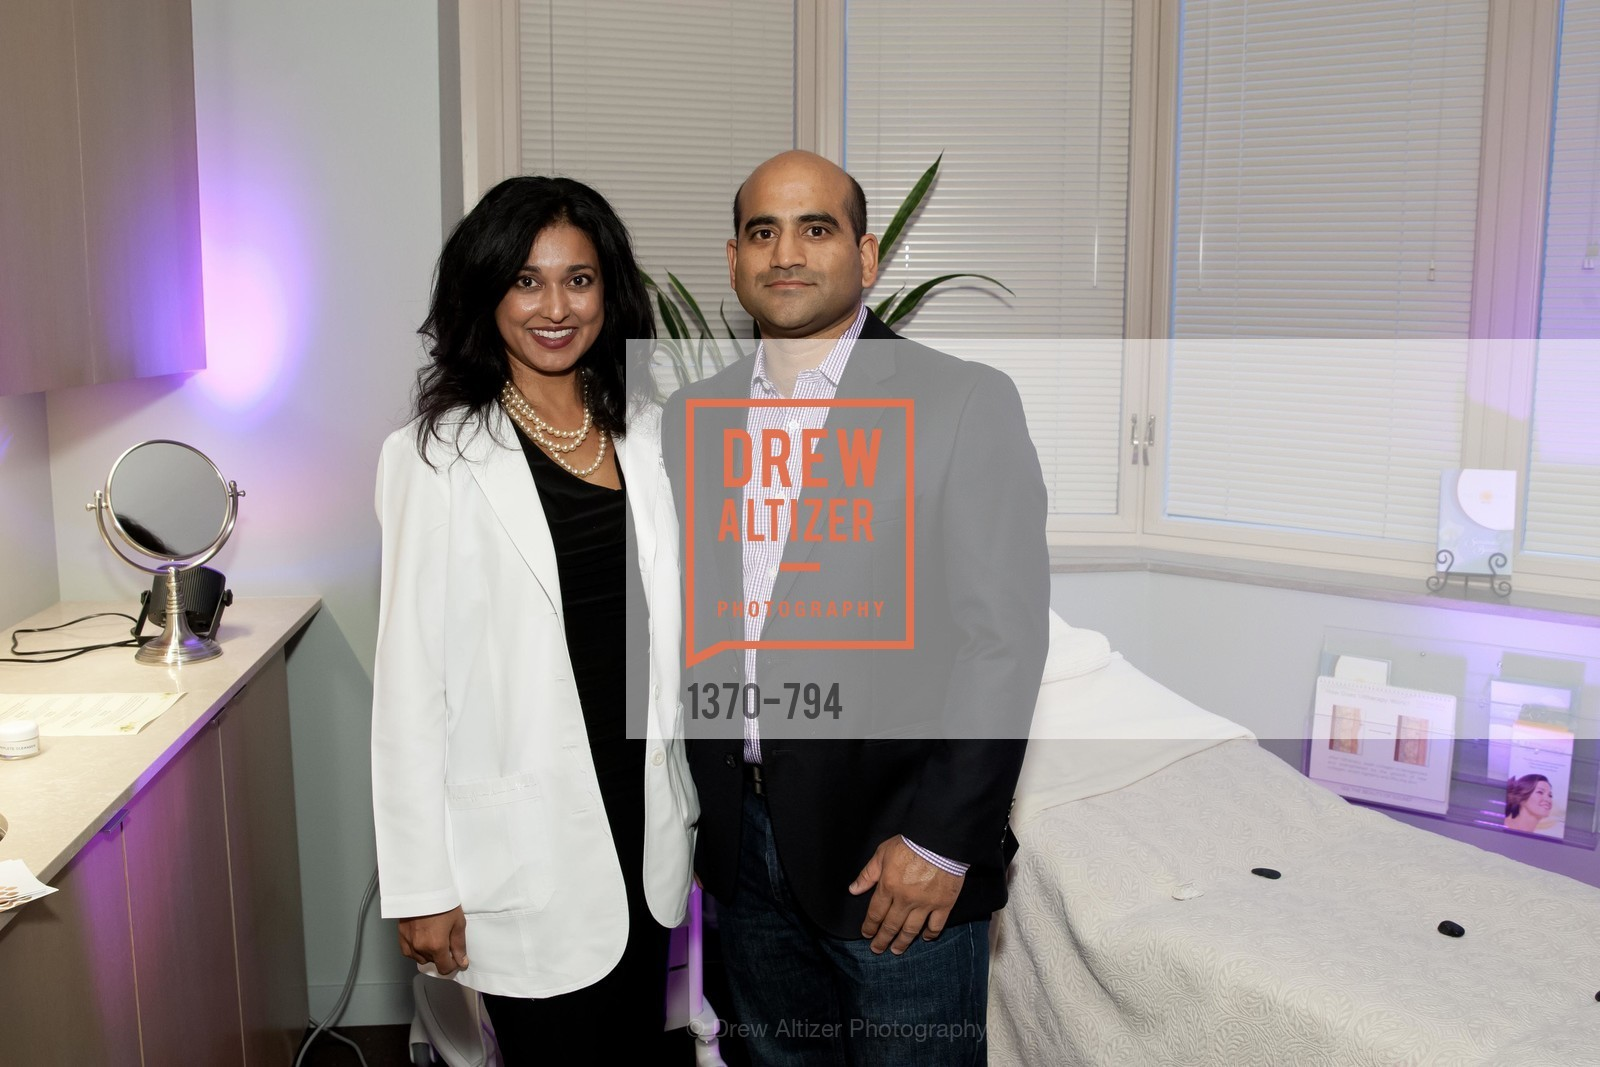 Shilpa Vichare, Anuj Gujar, EPI CENTER MedSpa Anniversary and Launch of REPLETE - Evening Celebration, US, April 22nd, 2015